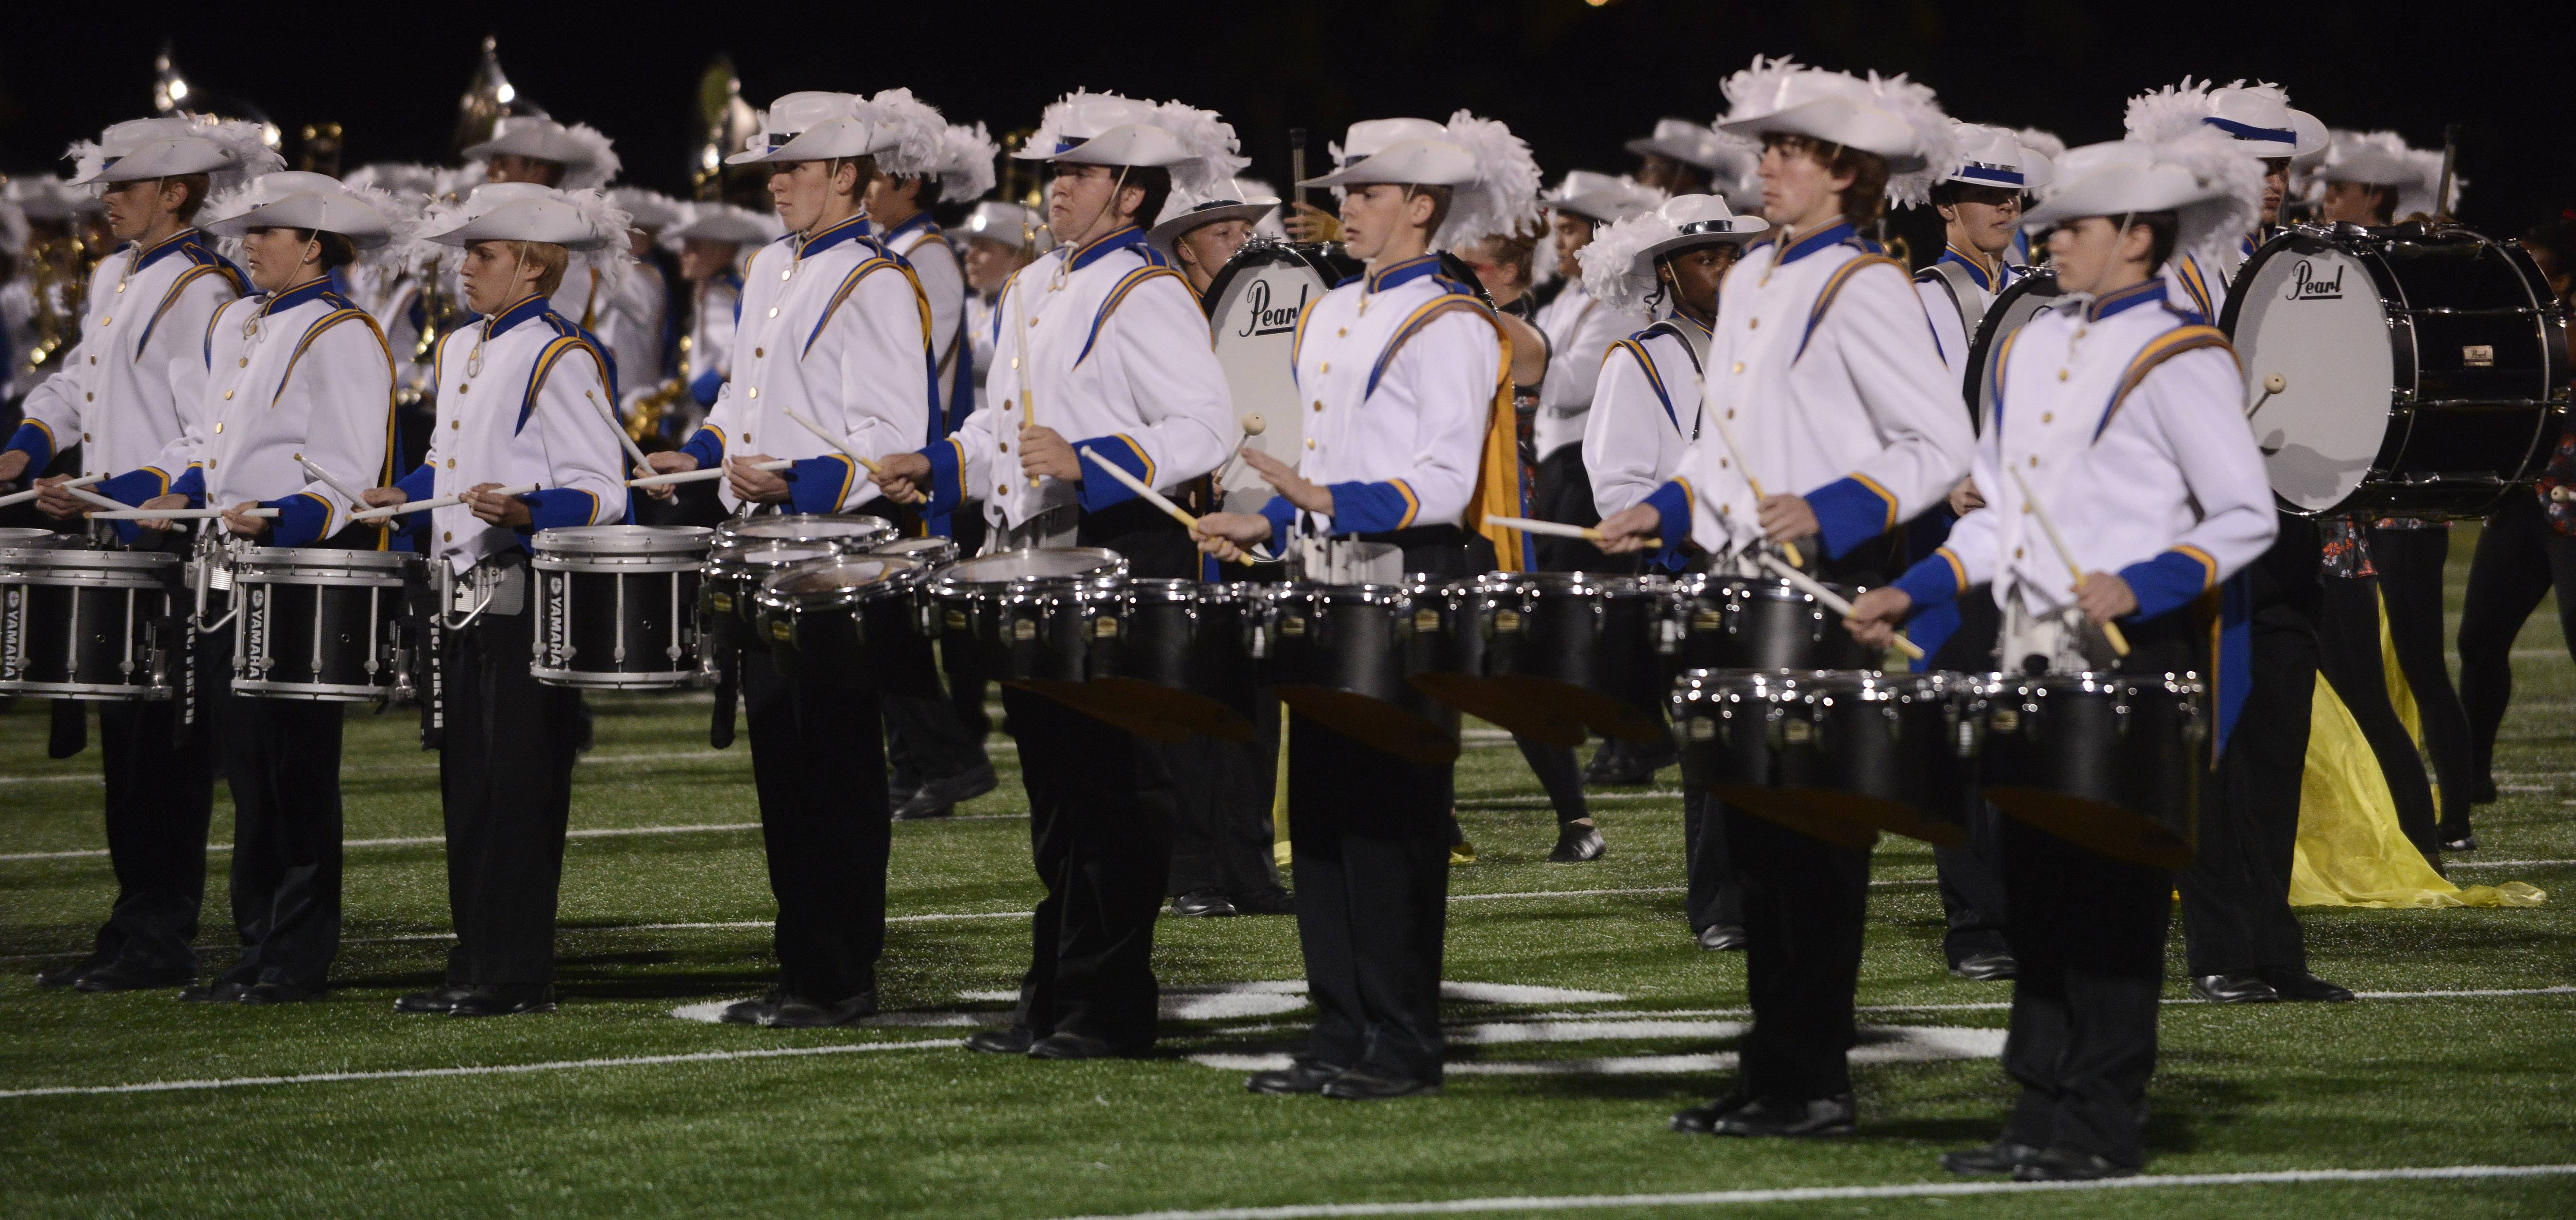 The Warren High School Marching Band performs during the annual Chicagoland Marching Band Festival at Wheeling High School Saturday.